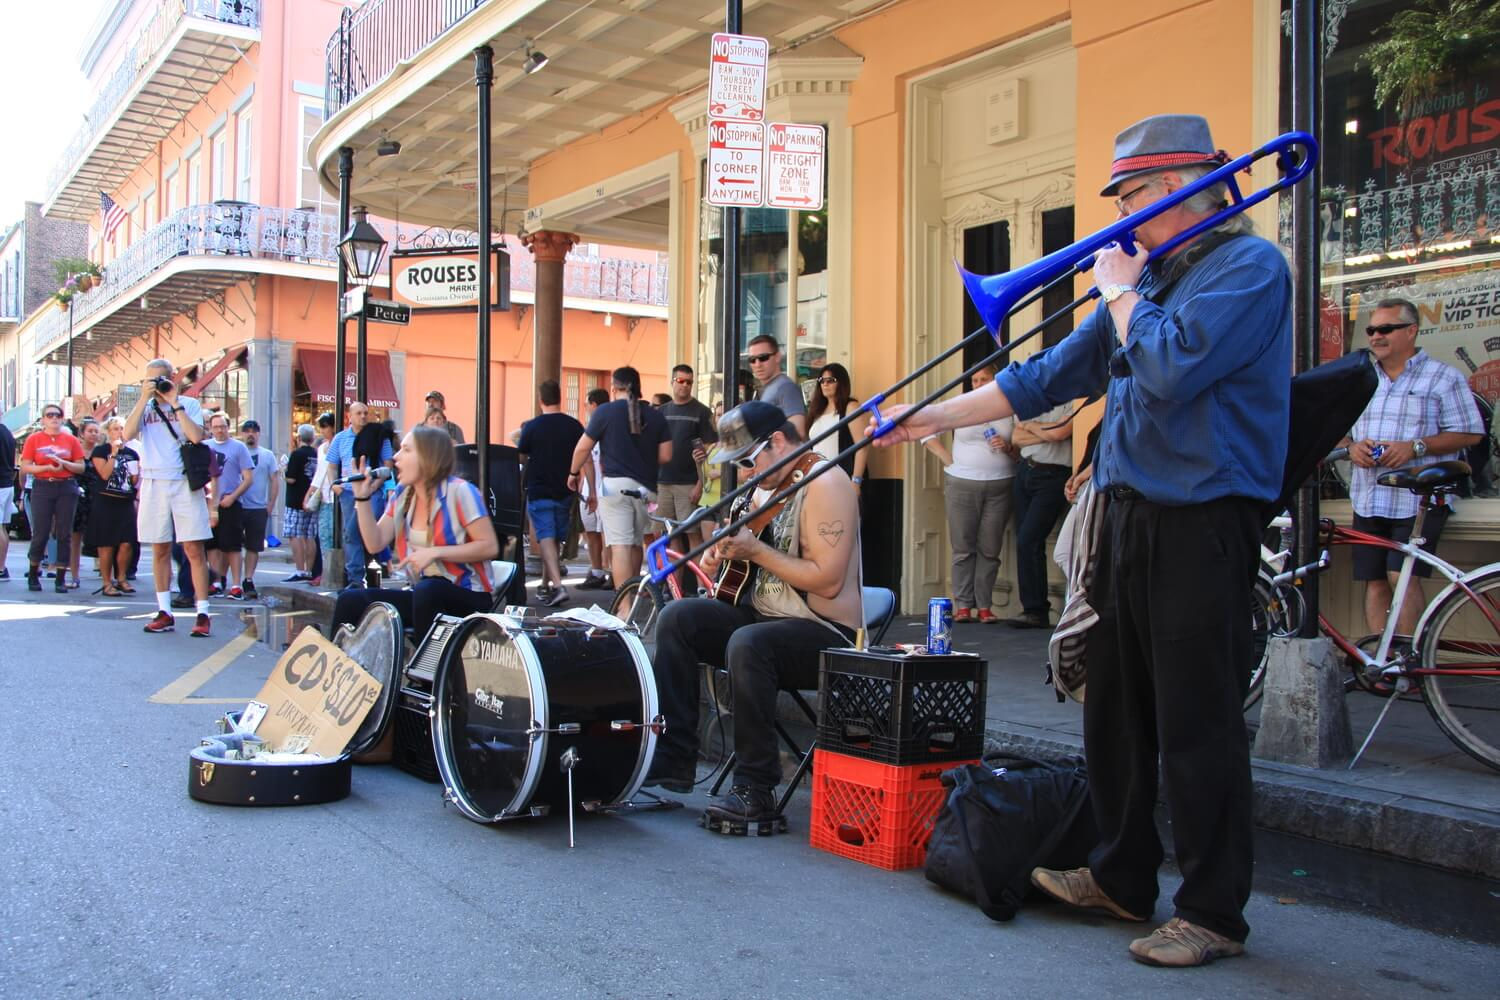 3 Days / 3 Nights in New Orleans